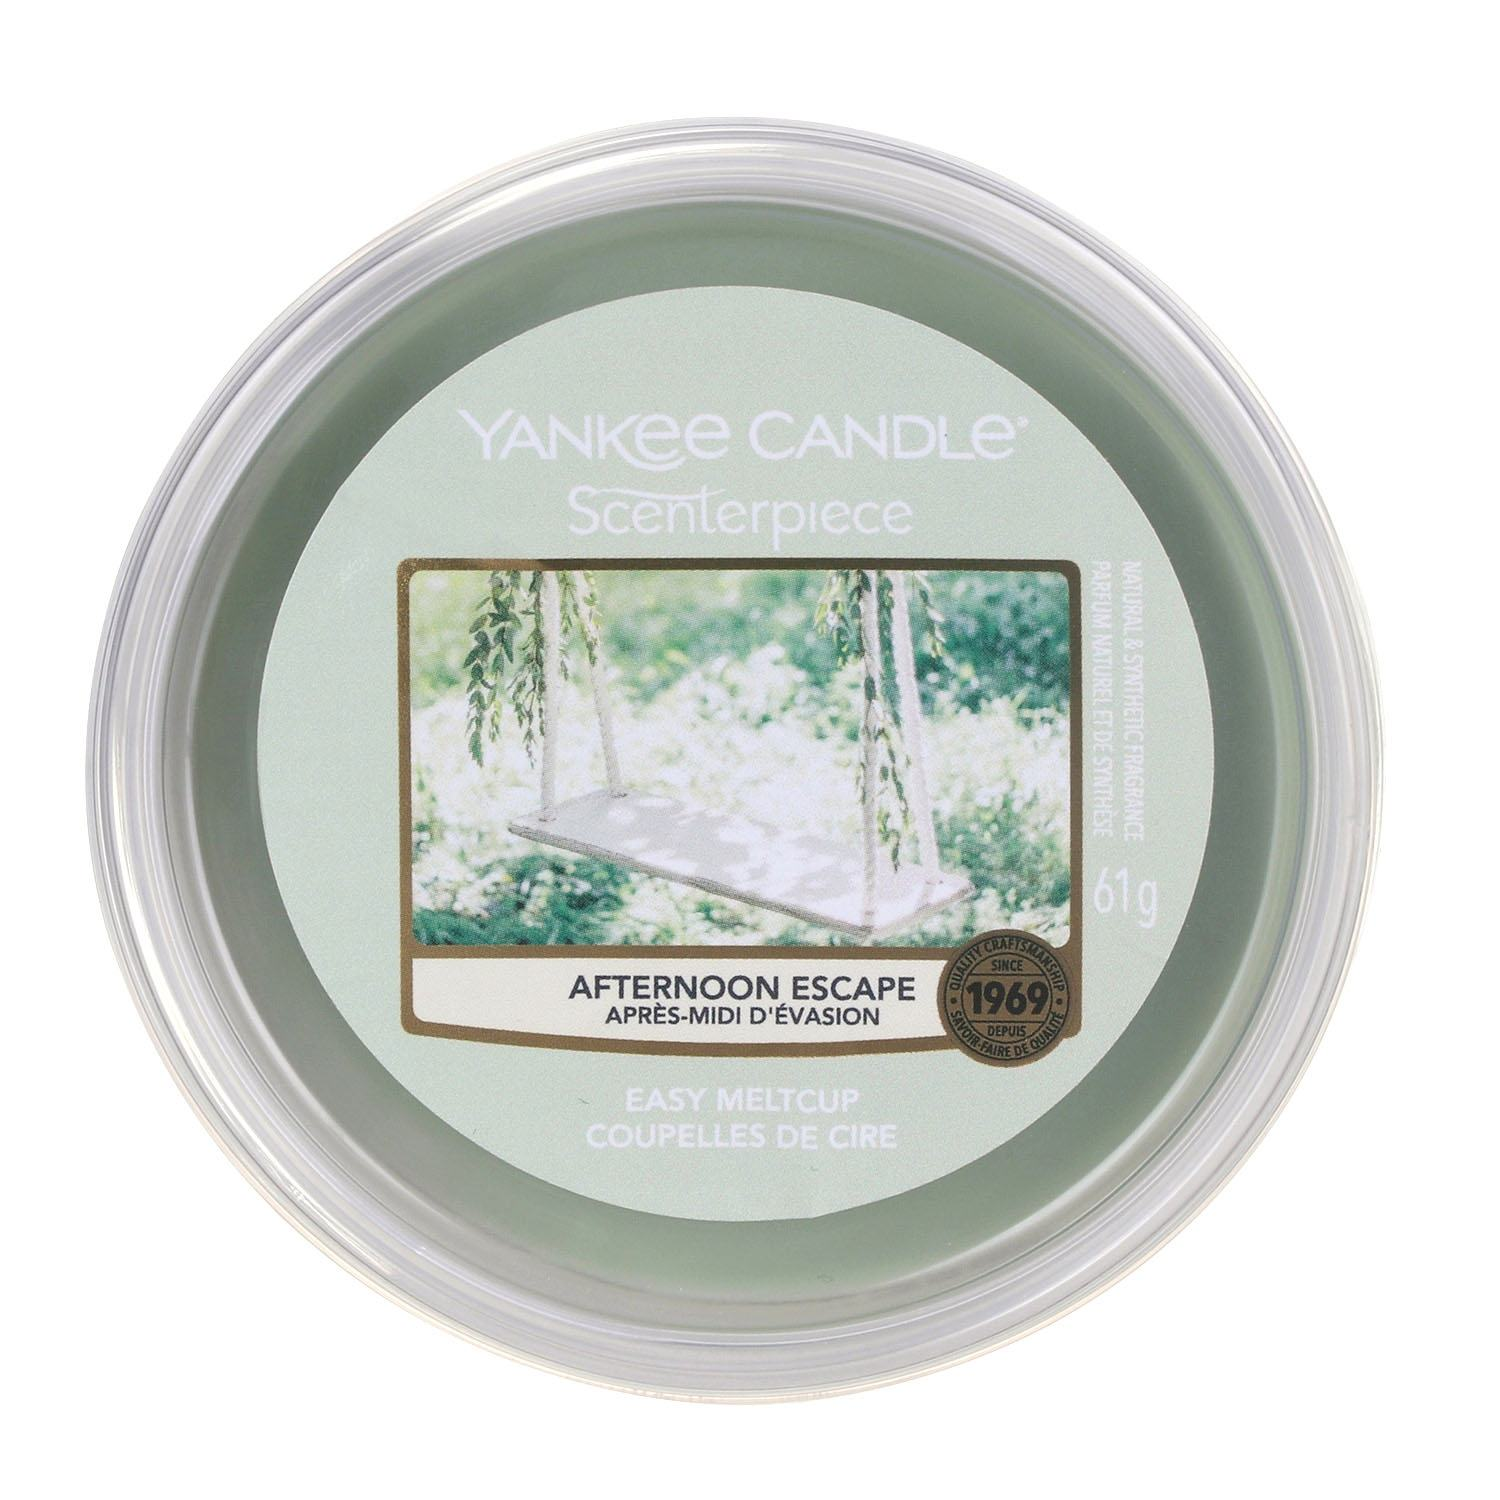 Yankee Candle Afternoon Escape Scenterpiece Melt Cup